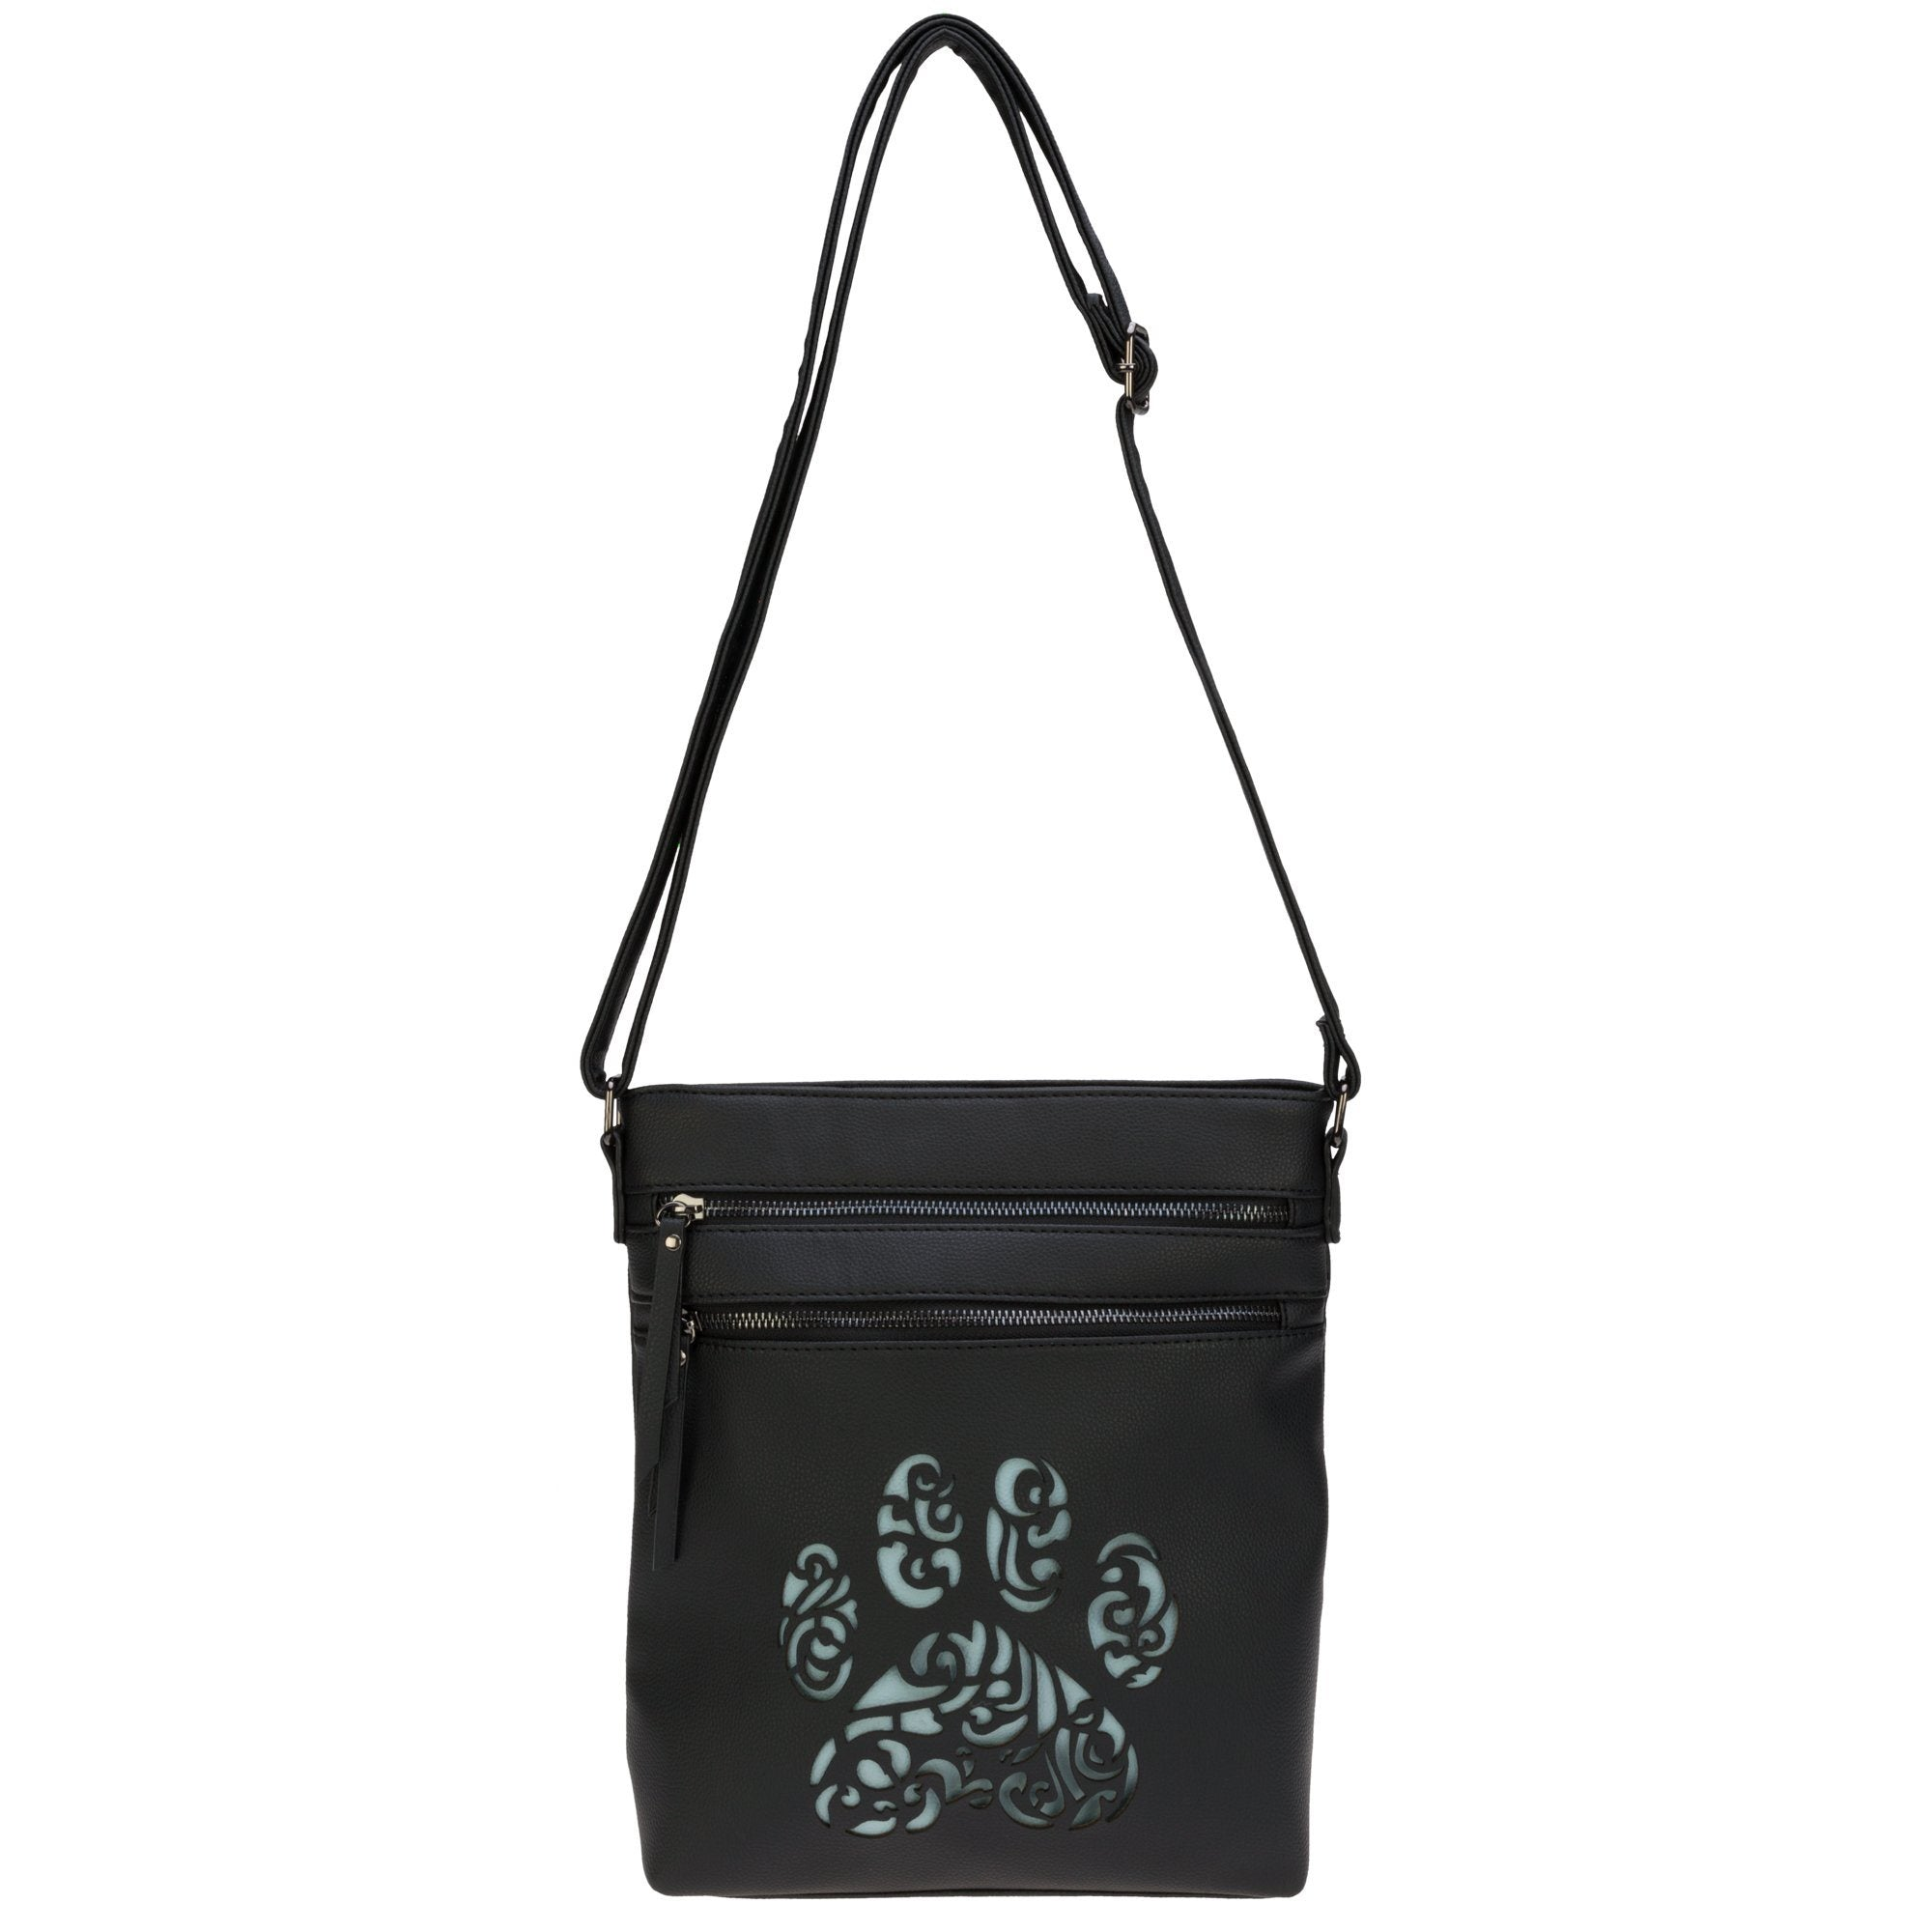 ... Pawsitively Beautiful Crossbody Bag ... c65e0c5420d4c